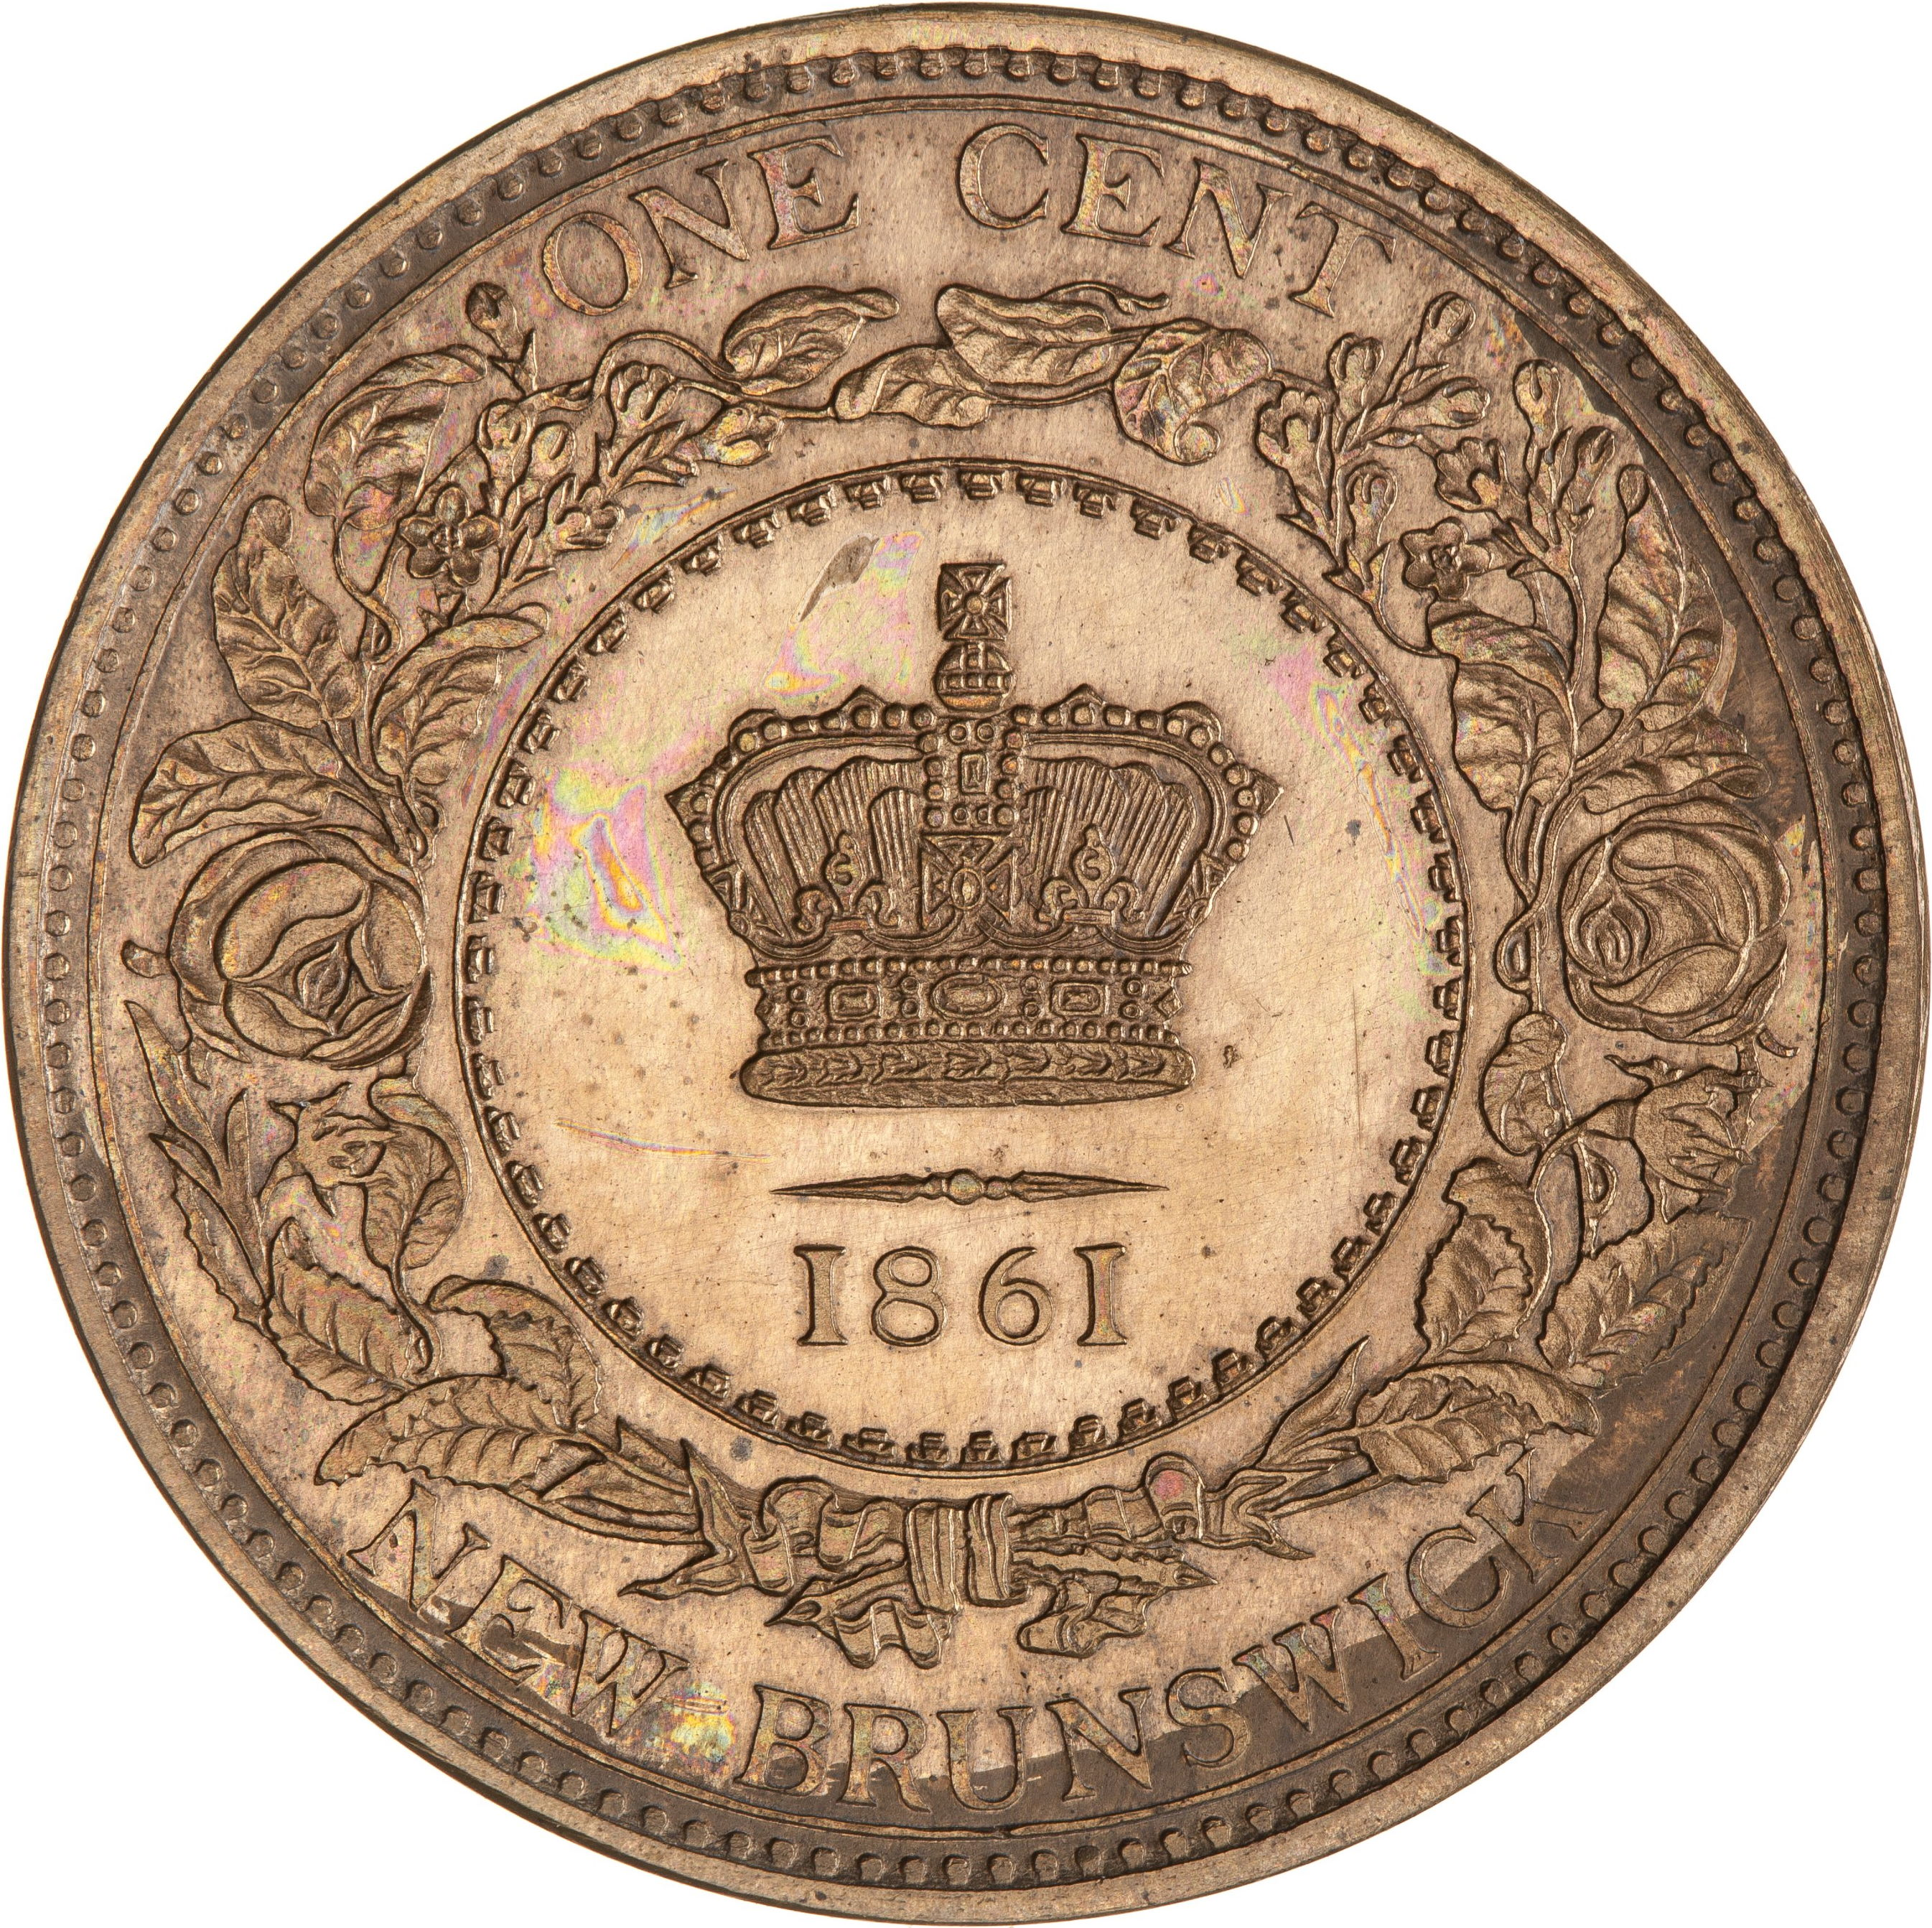 Reverse of 1861 New Brunswick One Cent Proof